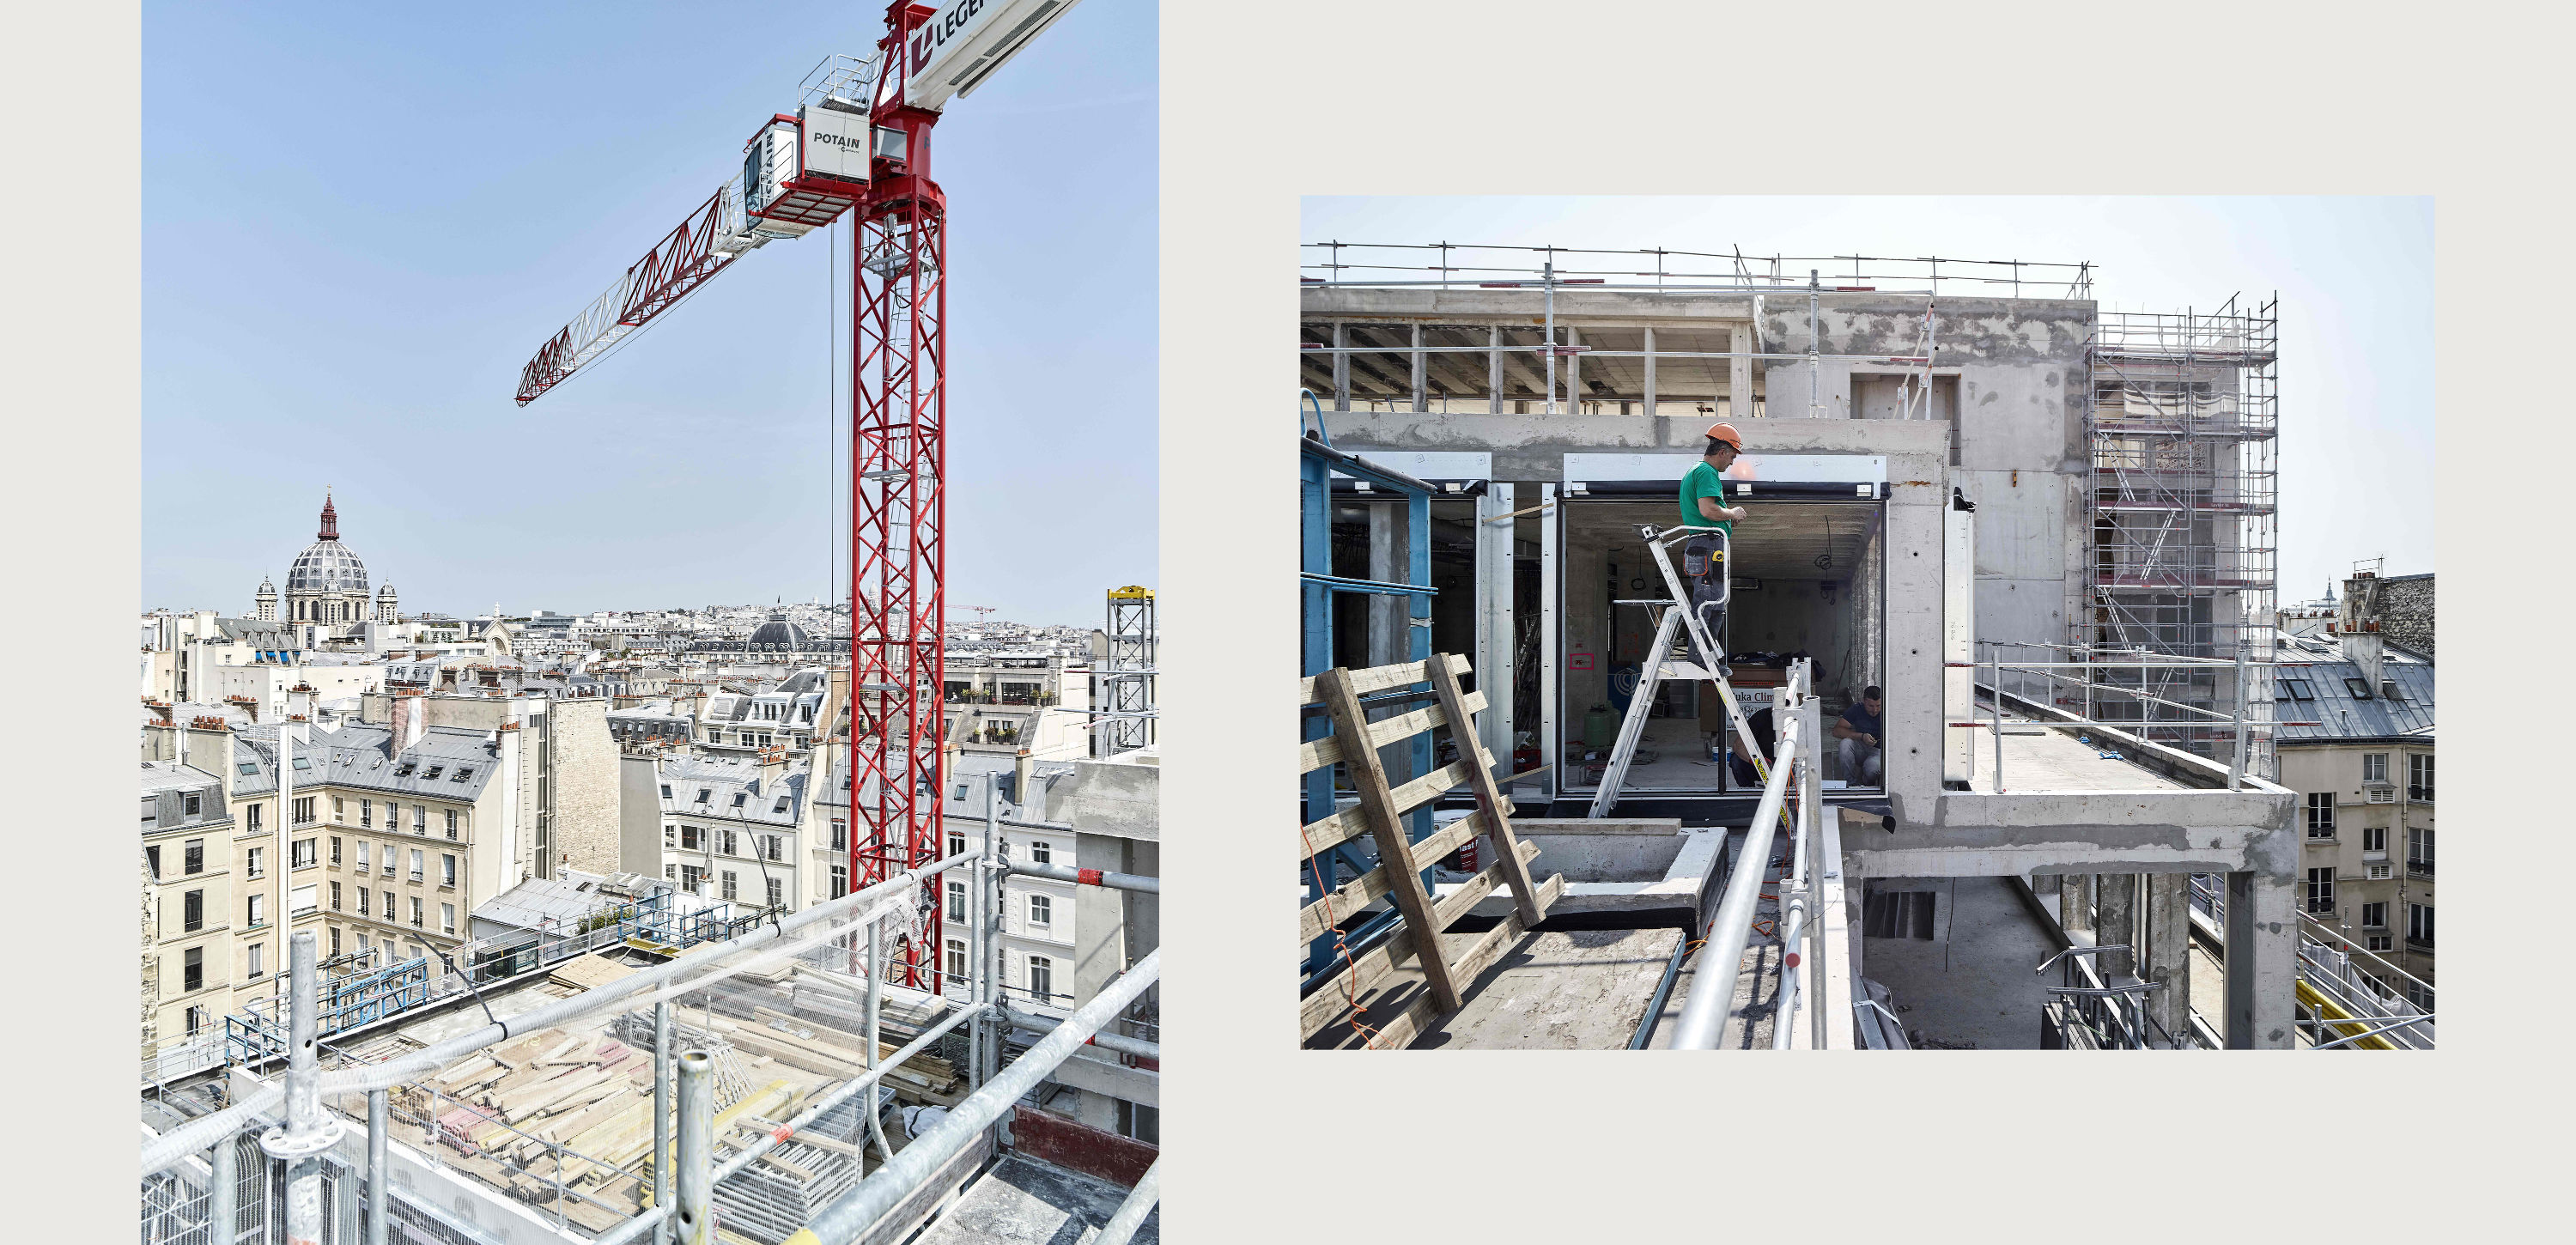 PCA STREAM penthievre chantier paris